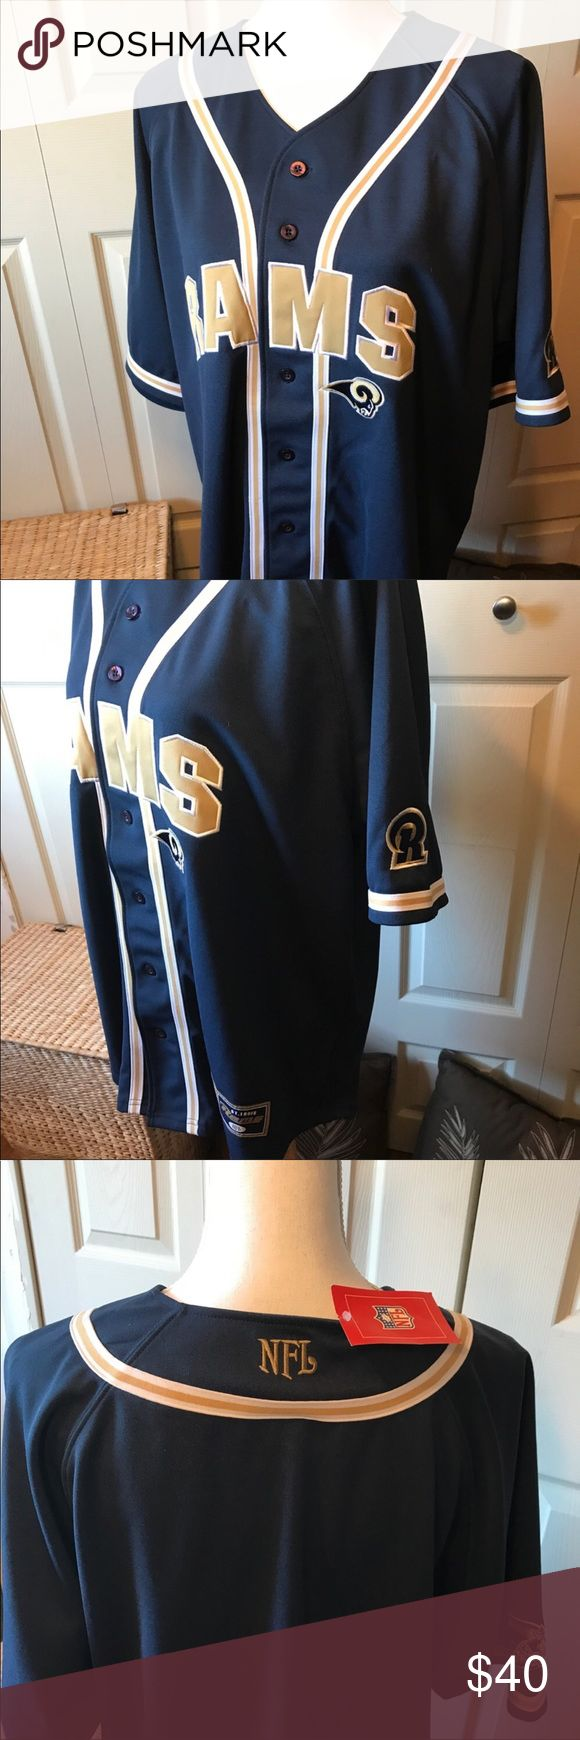 """""""BNWT"""" Los Angeles Rams Jersey, Size Large 🎁 All my items are clean and in New or Like New Condition. If you see something you like, please make an offer. Thank You for shopping my closet. This does not say Los Angeles, just says """"RAMS"""" NFL Shirts Casual Button Down Shirts"""